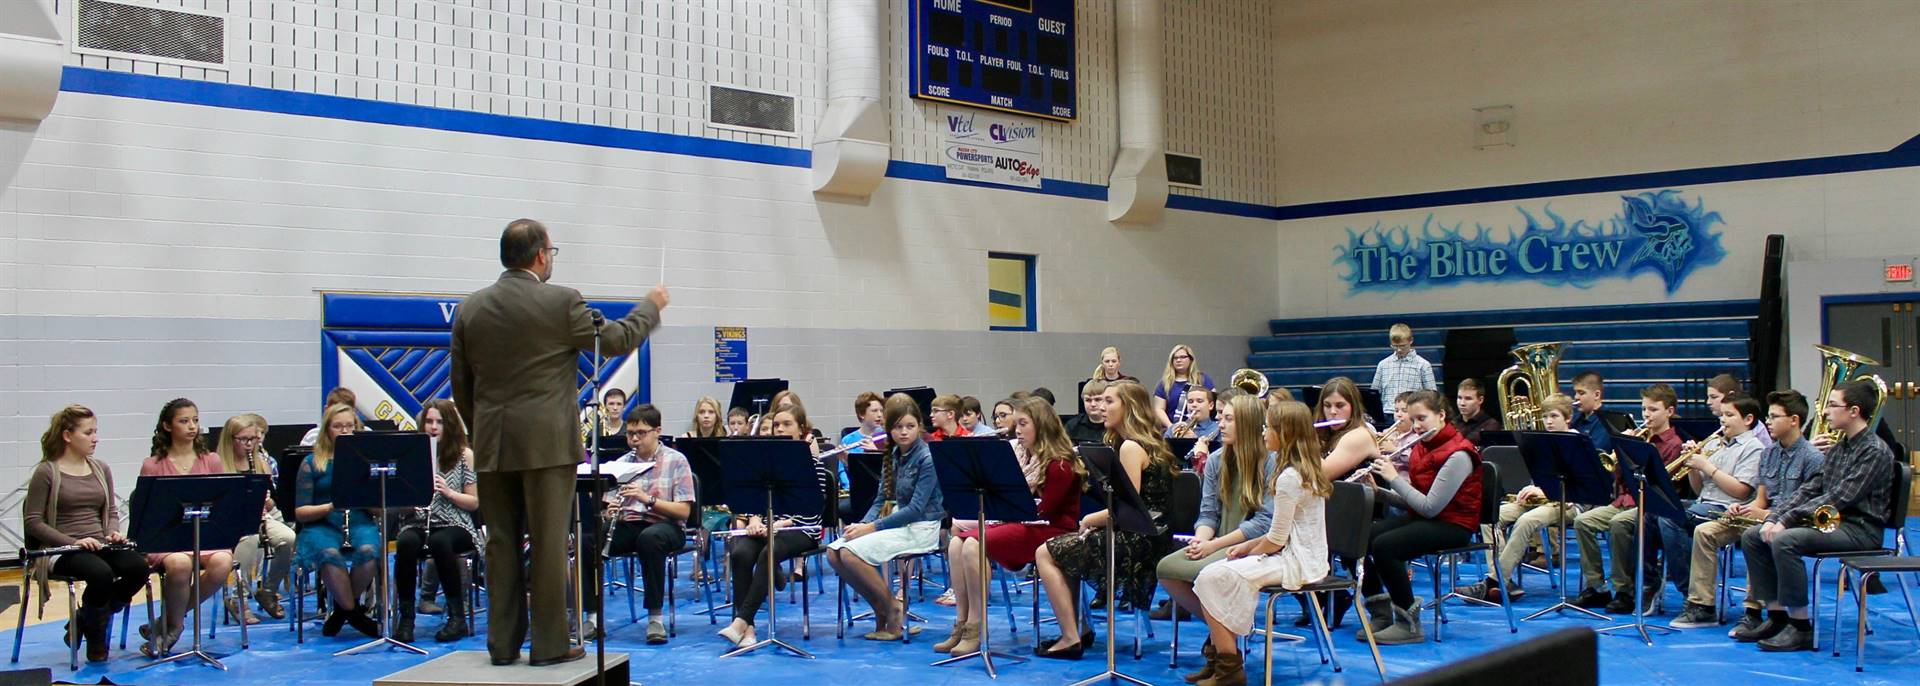 Junior high students performing during a band concert